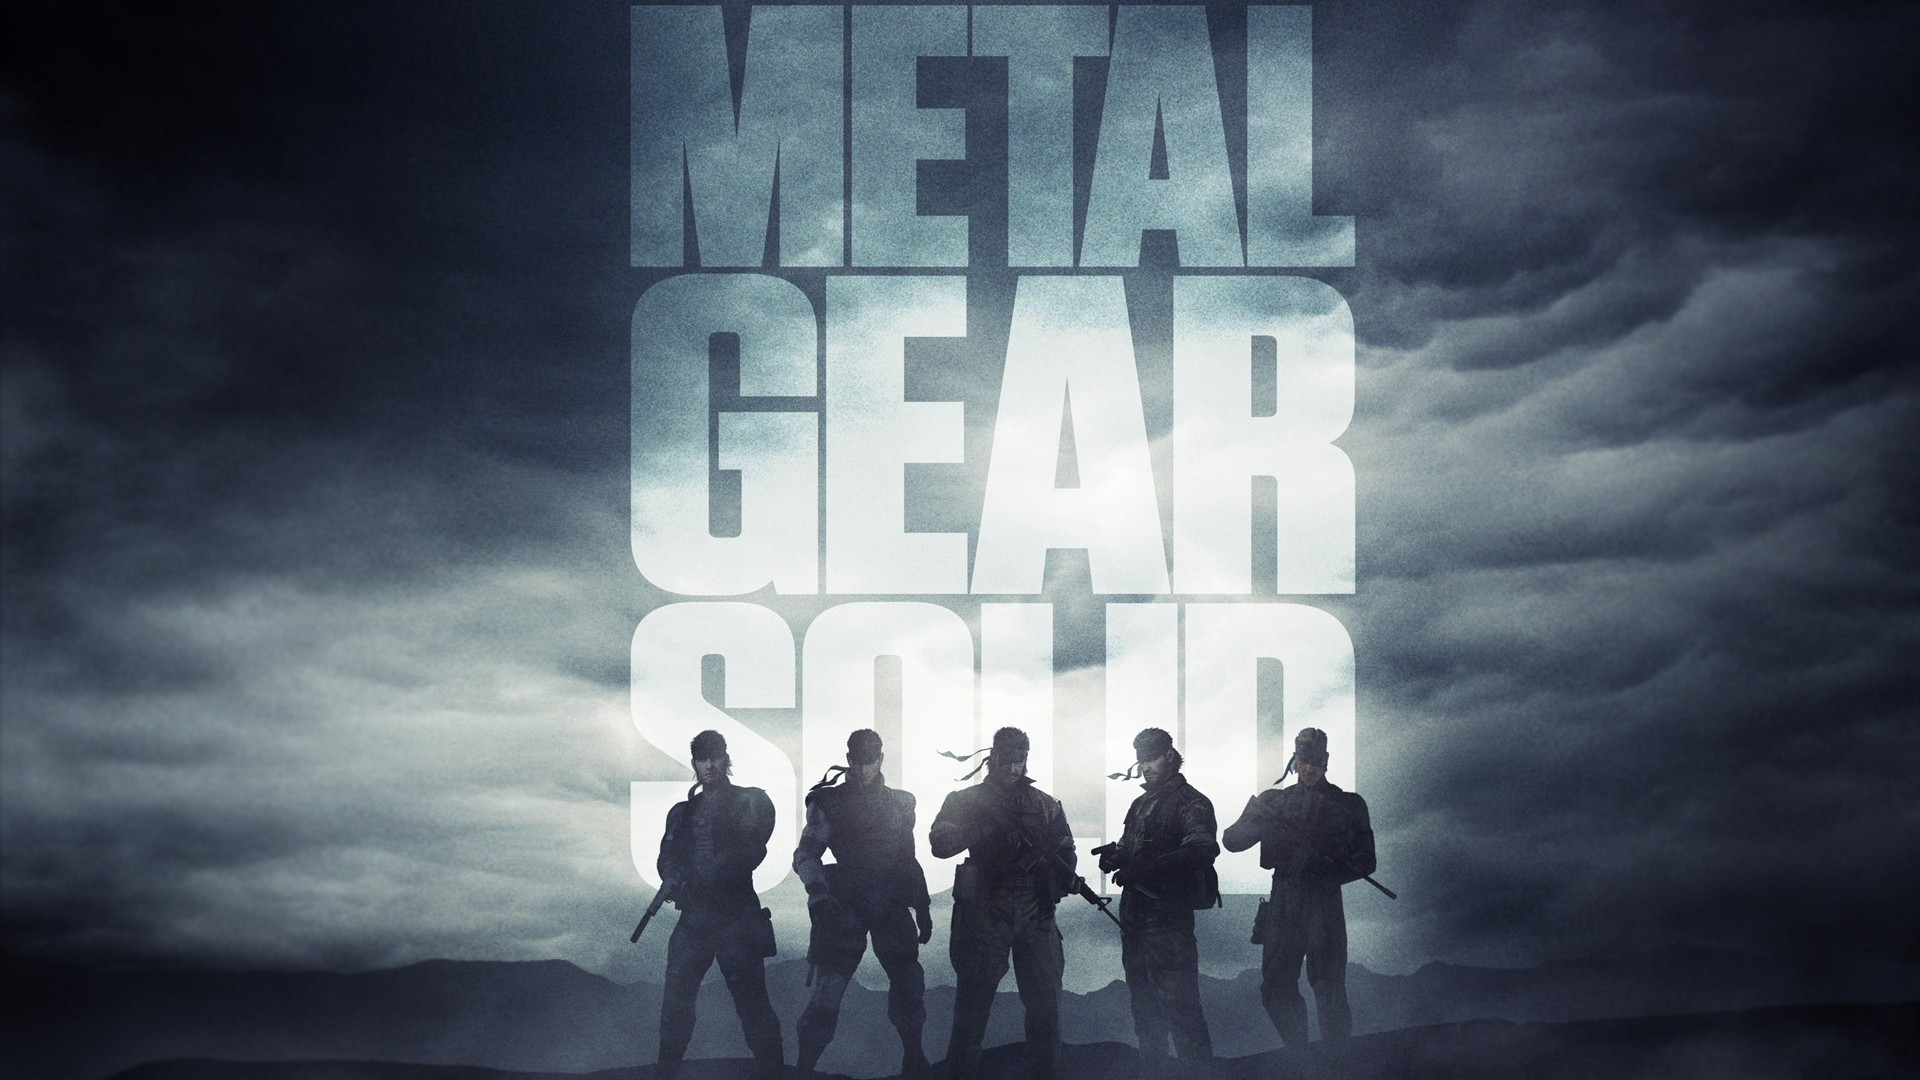 Metal Gear Solid Wallpapers, Pictures, Images